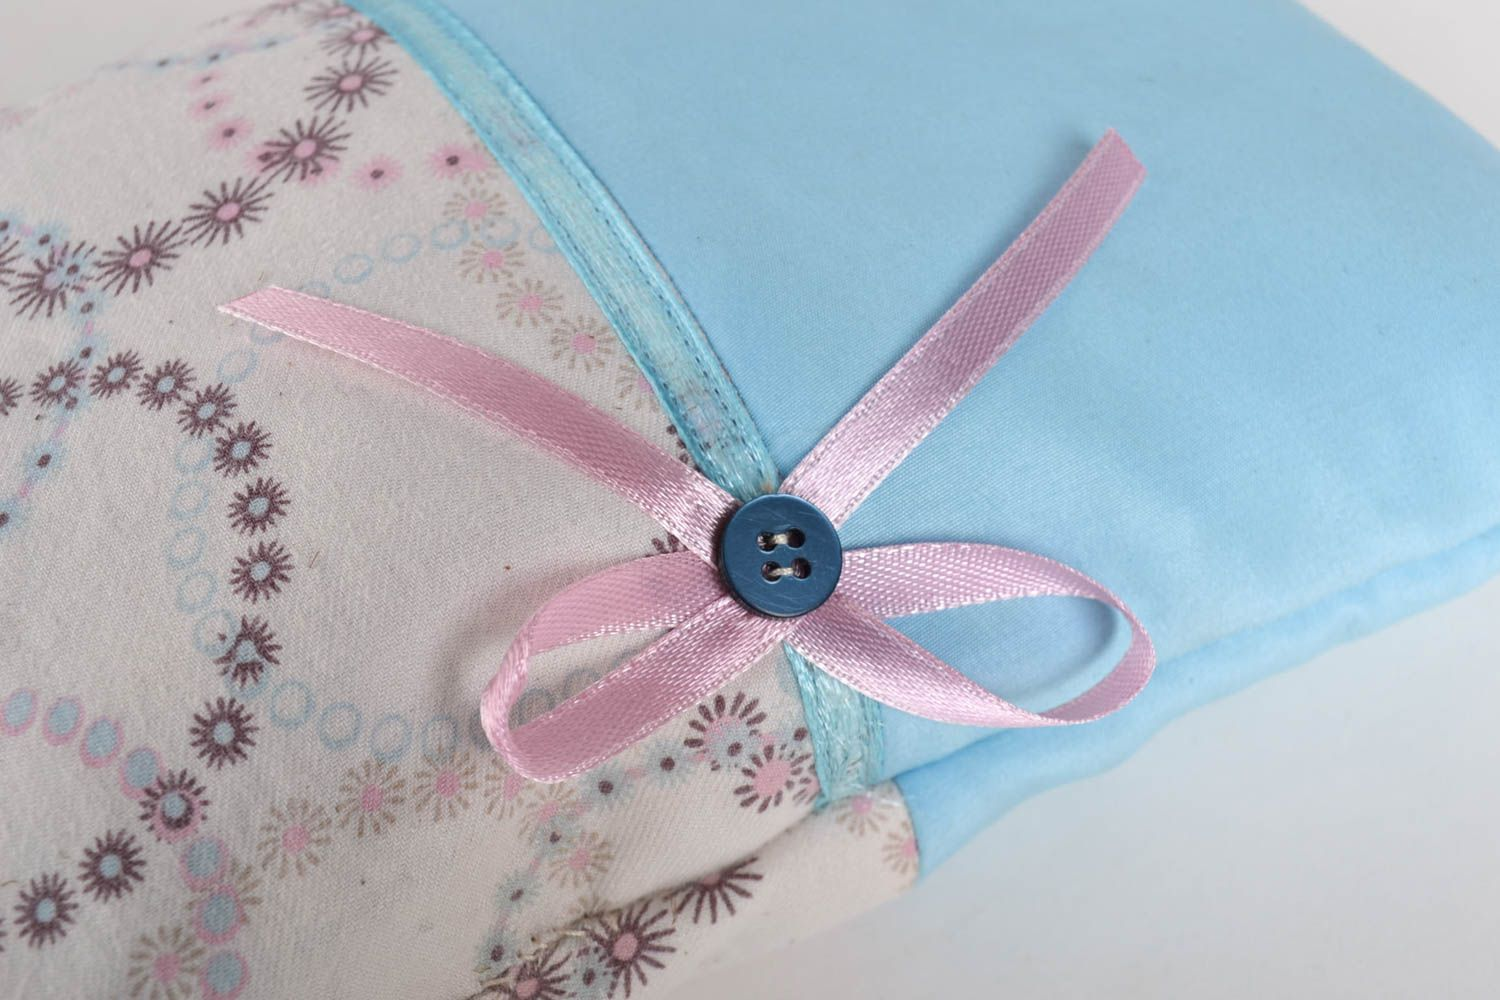 Handmade scented sachet home decoration therapeutic pillows homemade gifts  photo 2